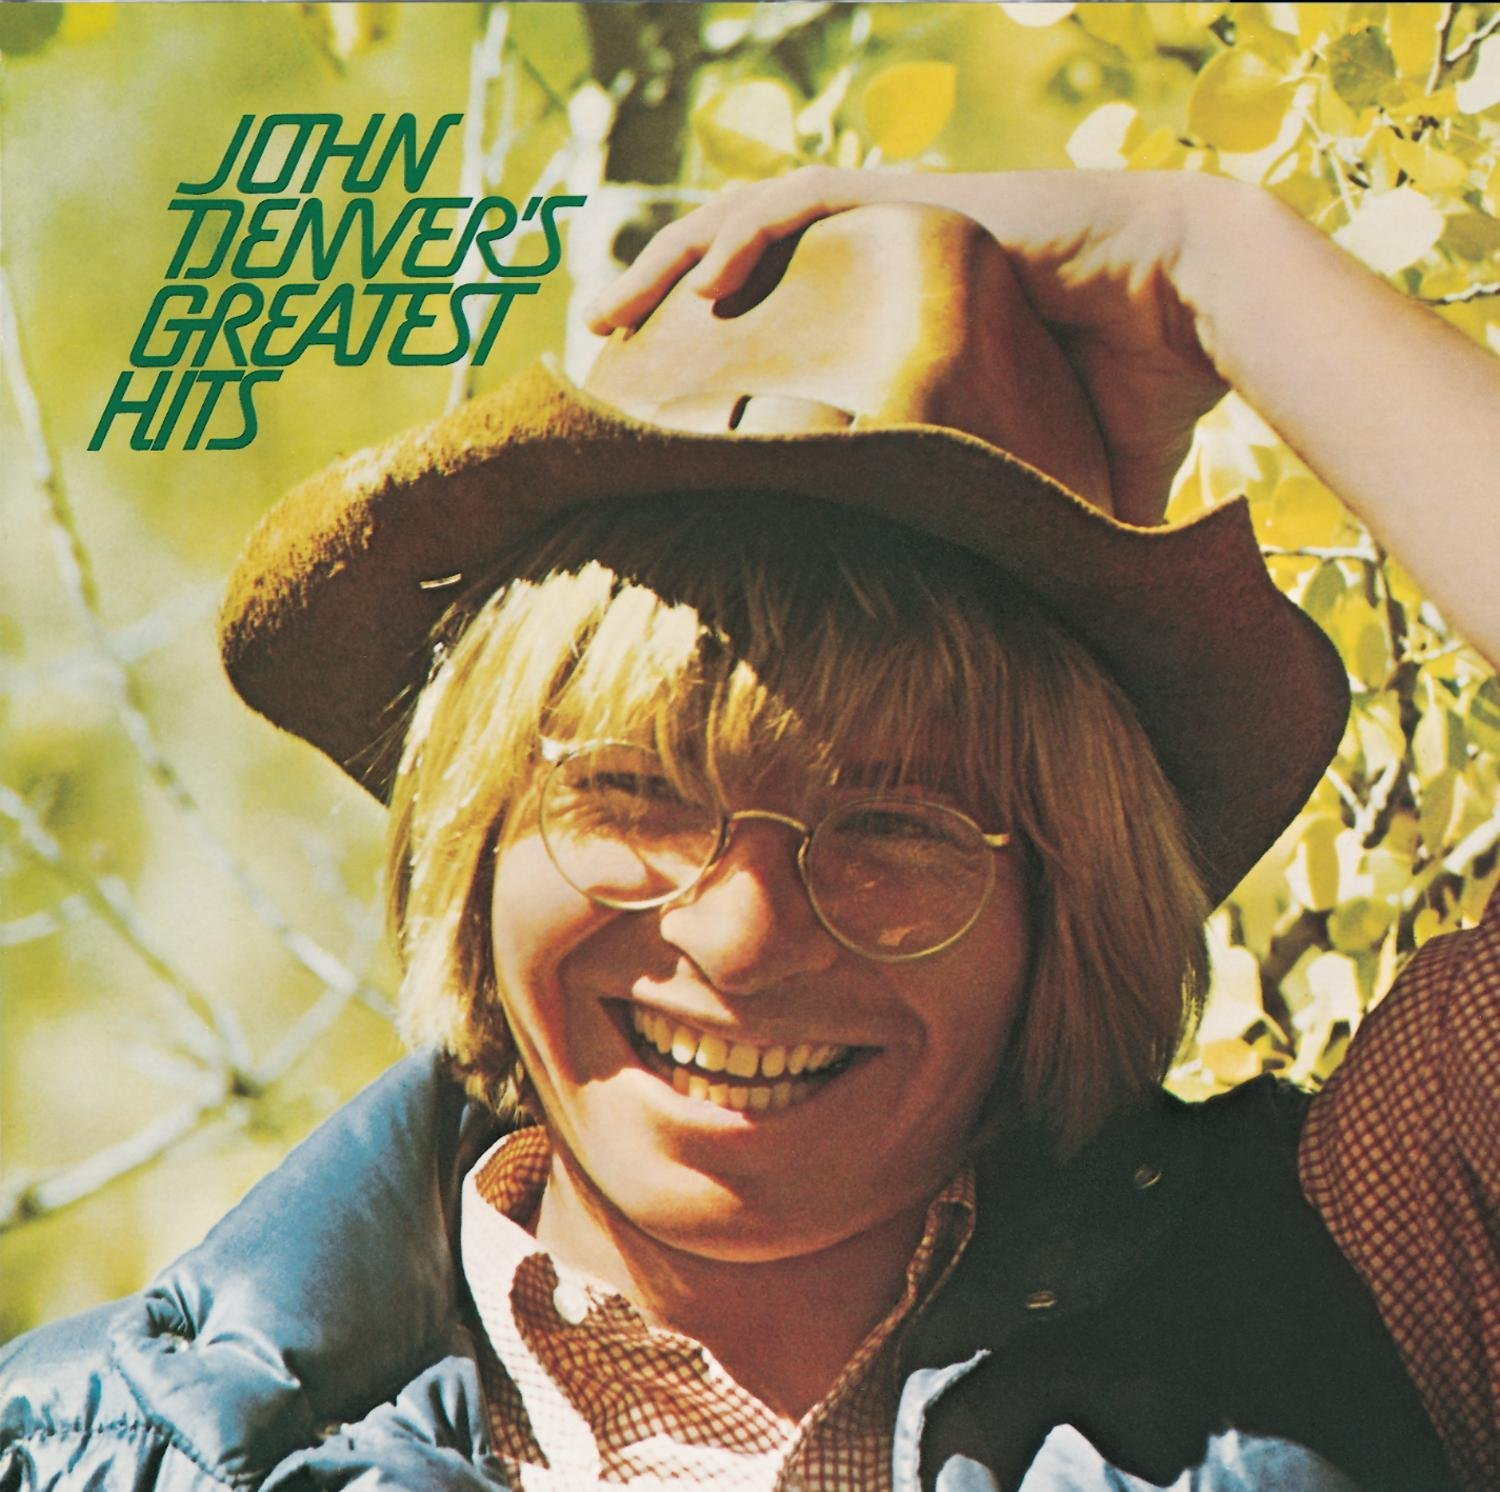 John Denver Estate Releases Unreleased Track On The Anniversary Of His Death